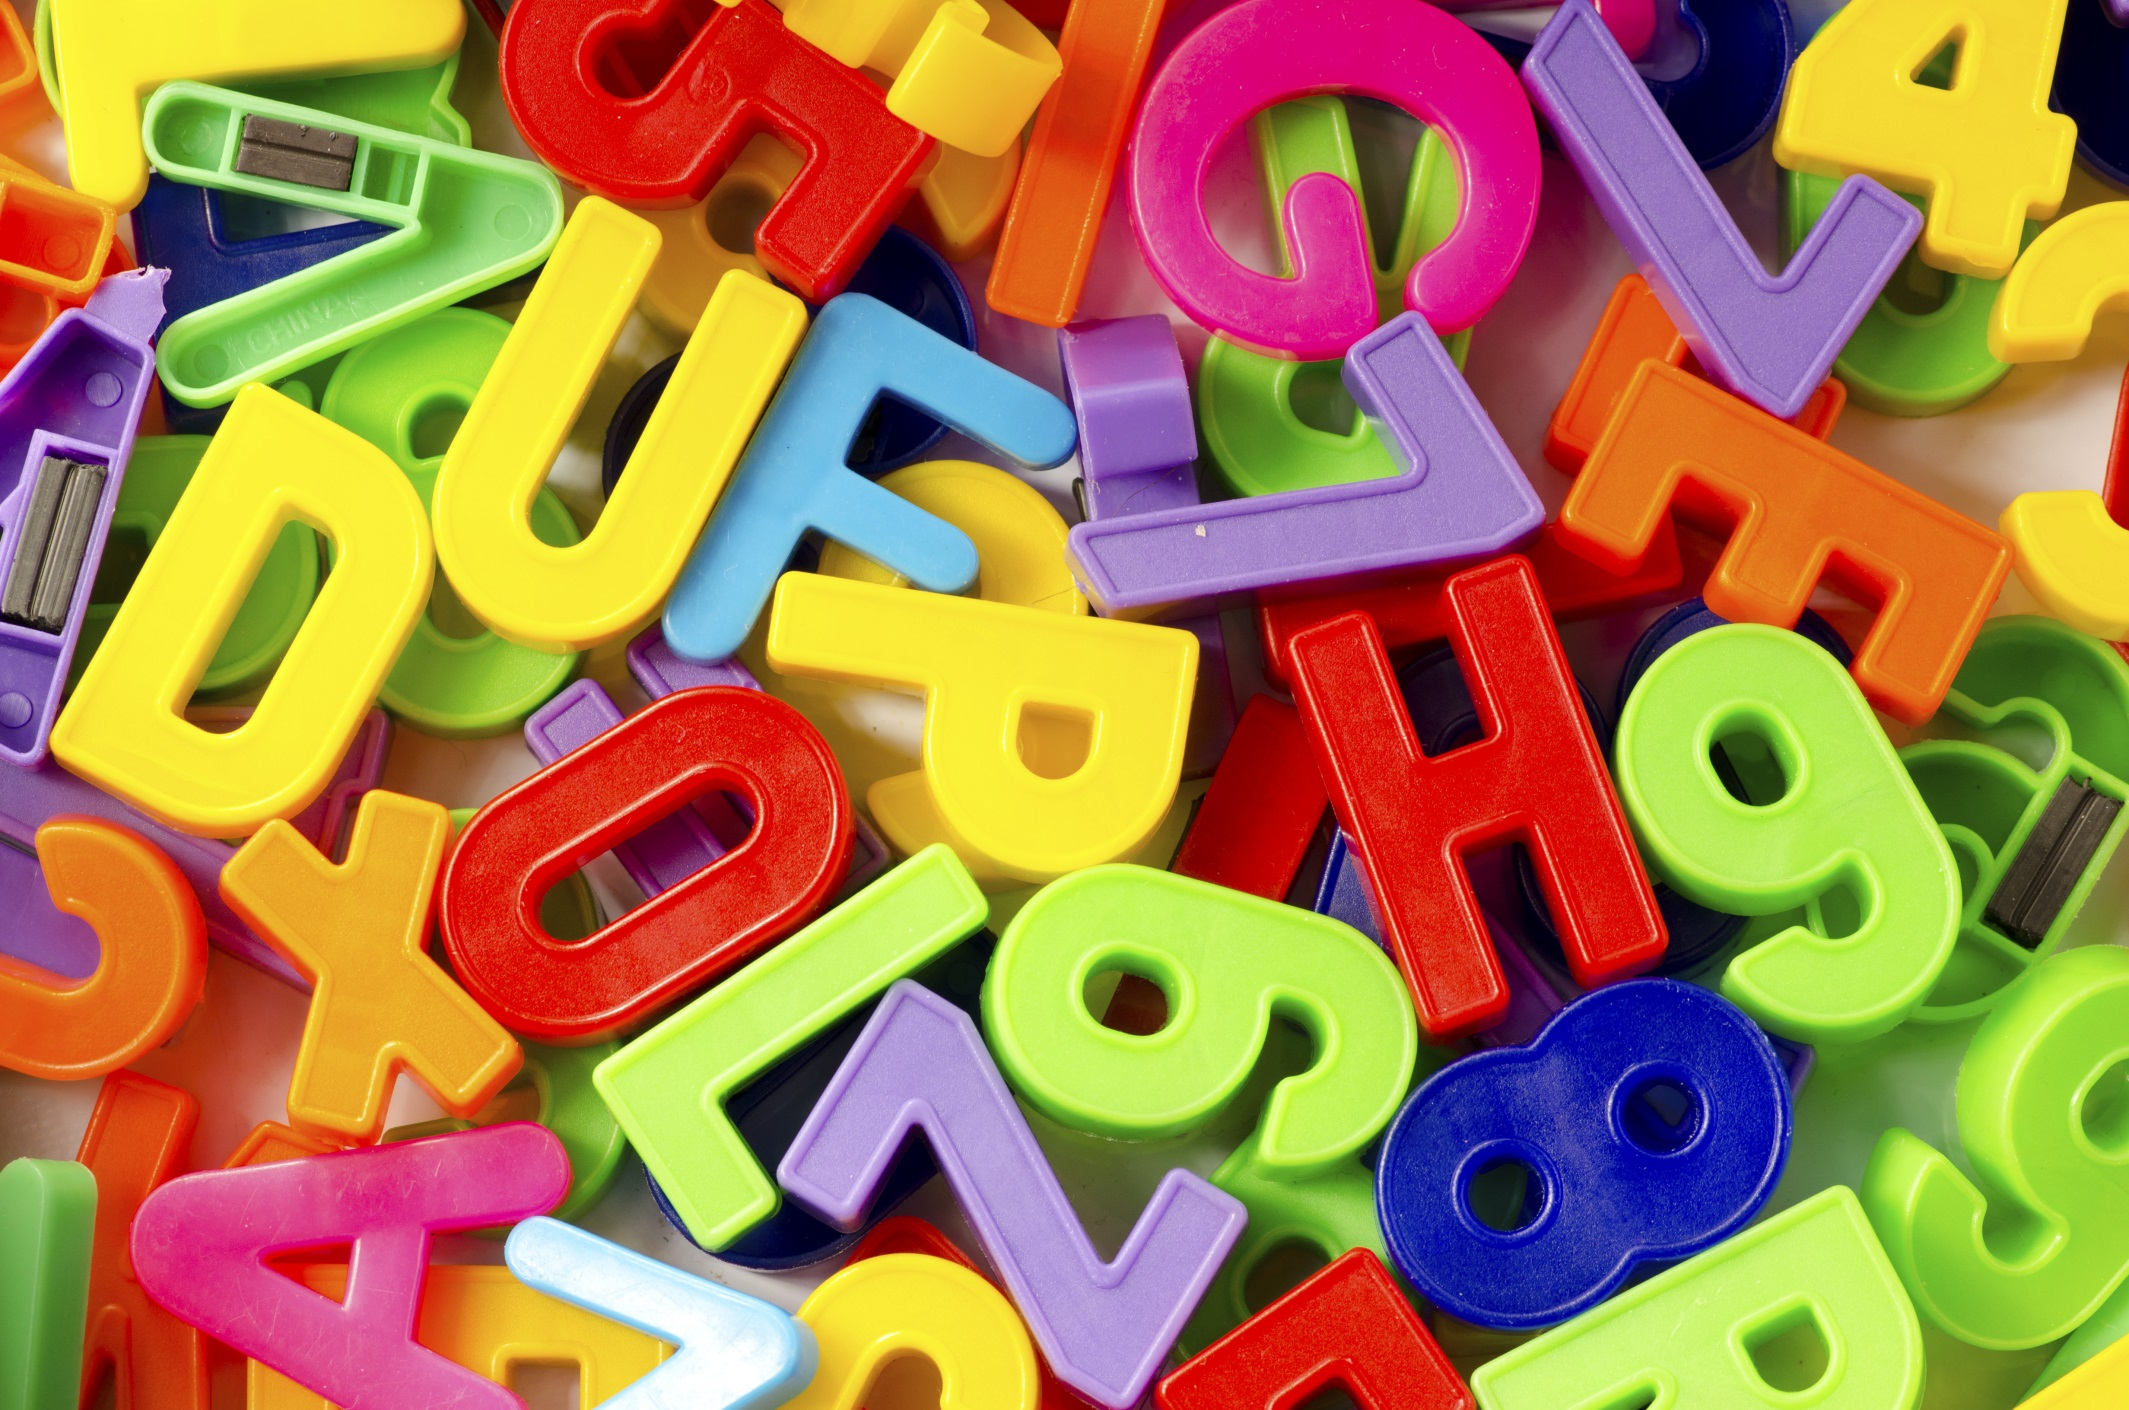 Could dyslexia be a gift? Seeing what others might not see, many people with dyslexia think outside the box.